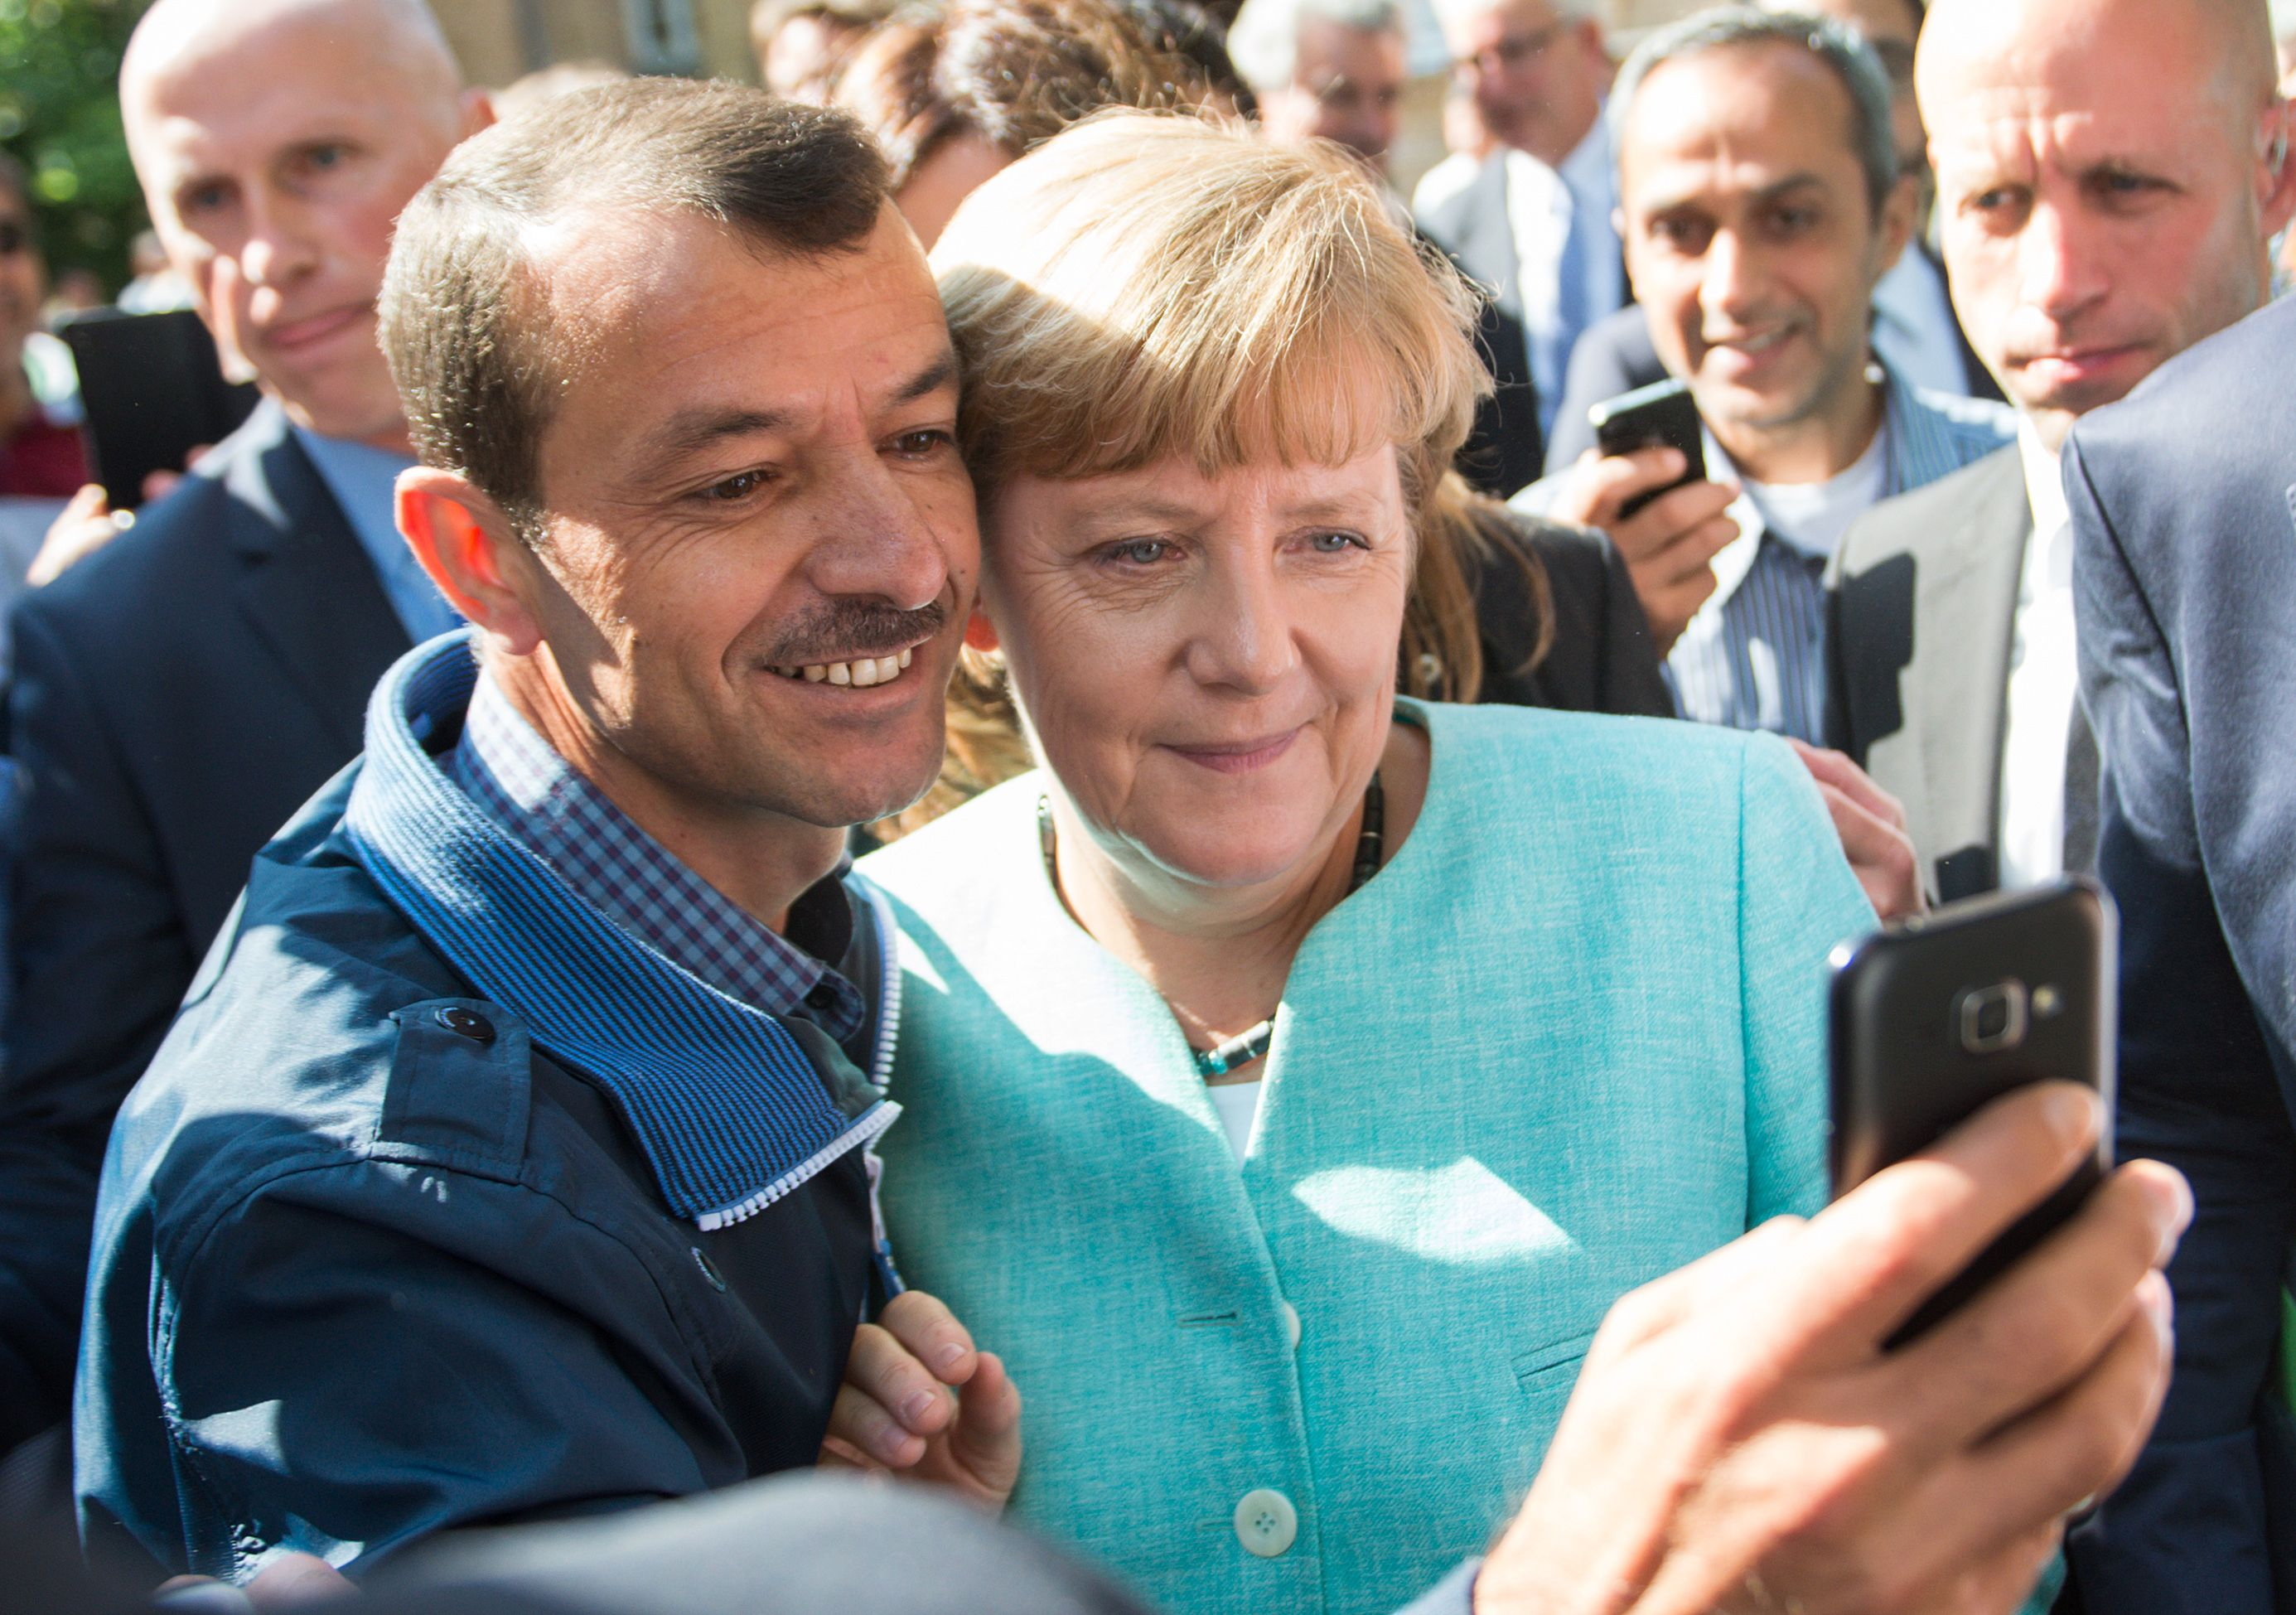 Lessons from Germany for integrating refugees